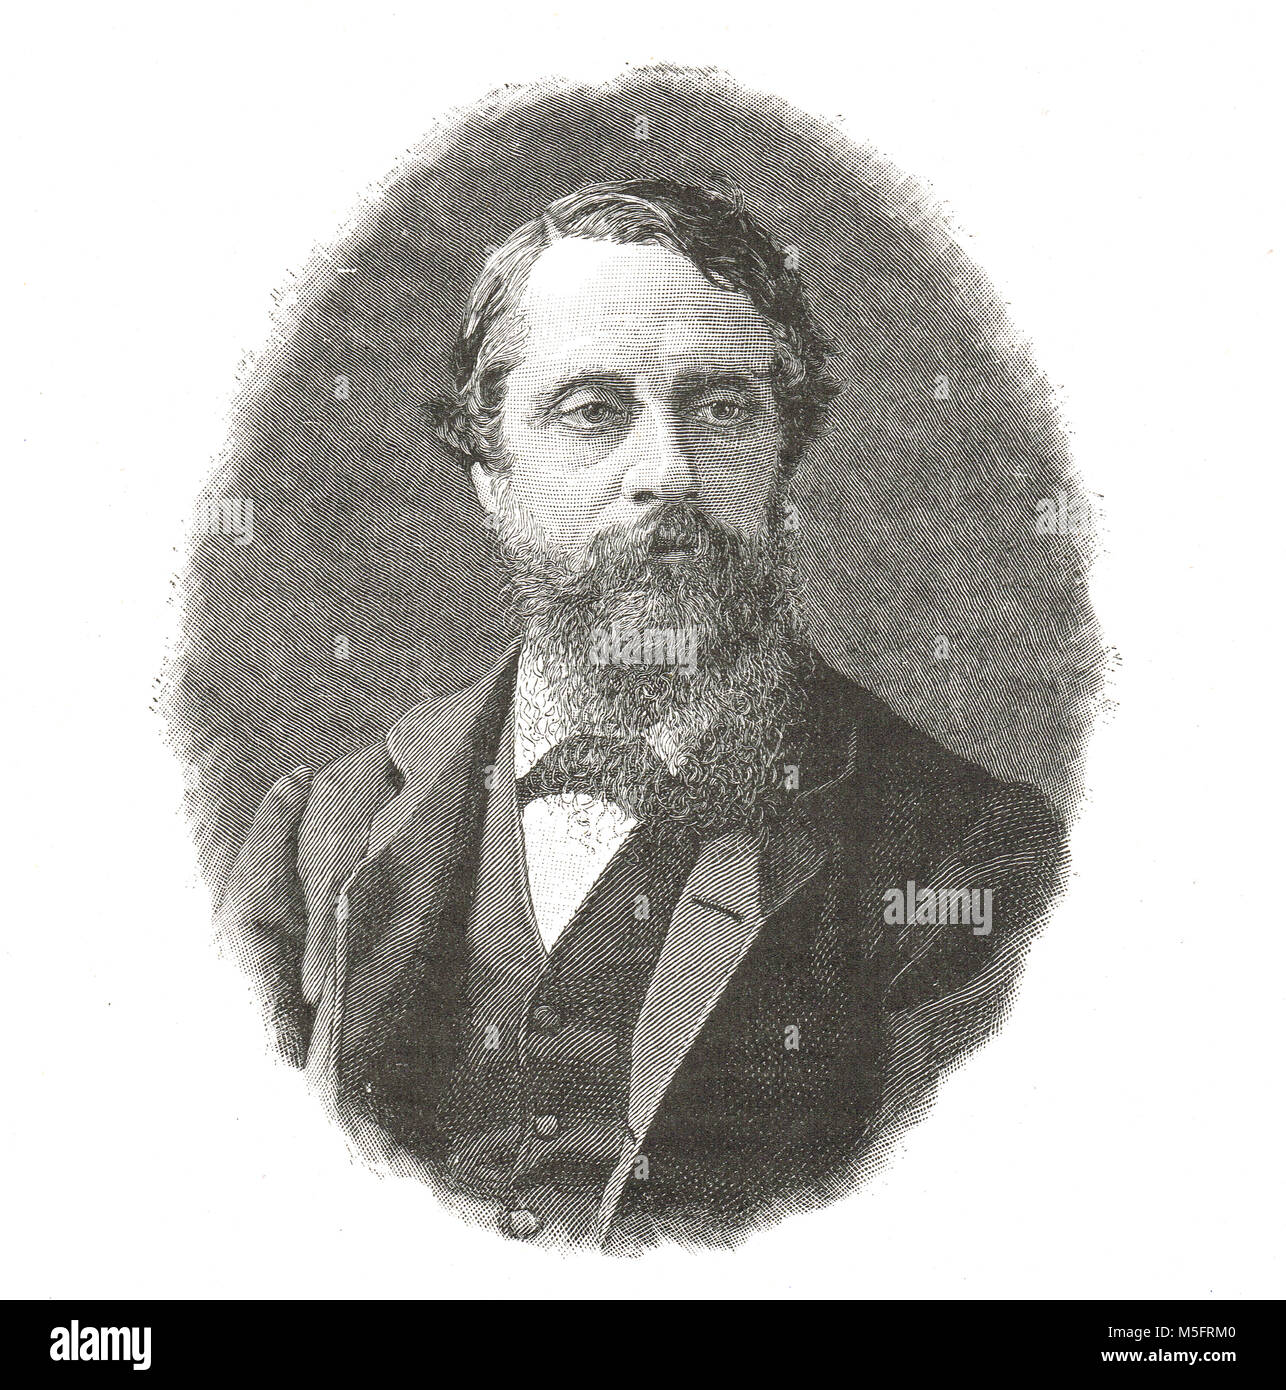 Lord Frederick Charles Cavendish (1836-1882), killed in Phoenix Park Murders by rebel group Irish National Invincibles - Stock Image